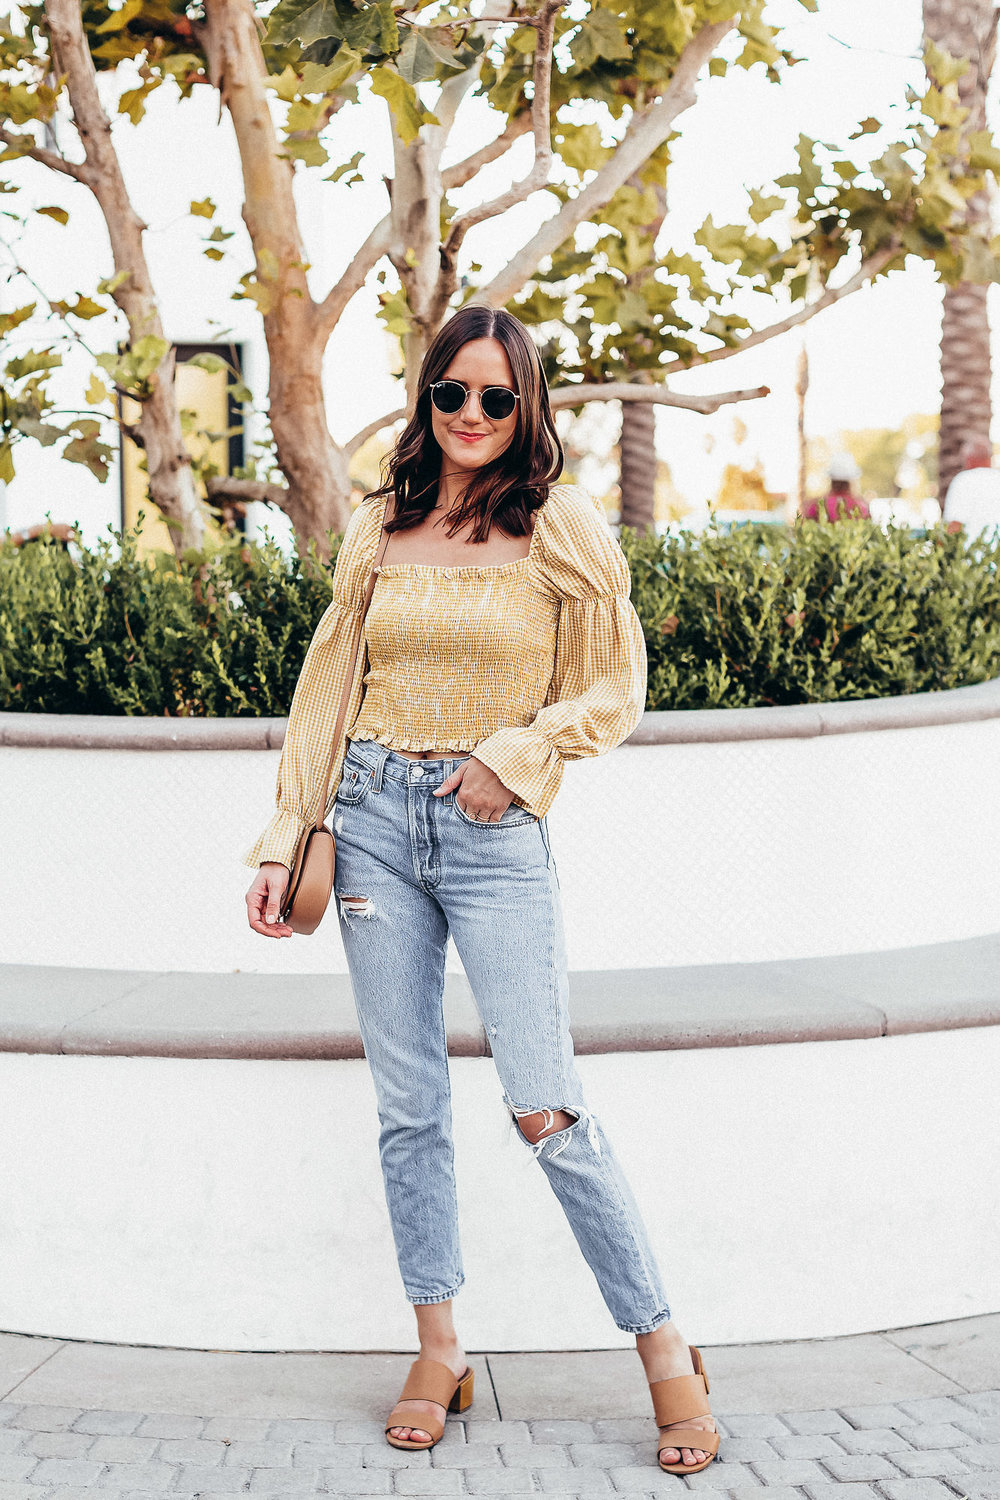 Shop the Look Below.  Urban Outfitters Top  |  Levi's Jeans  |  Madewell Shoes  |  See By Chloe Bag